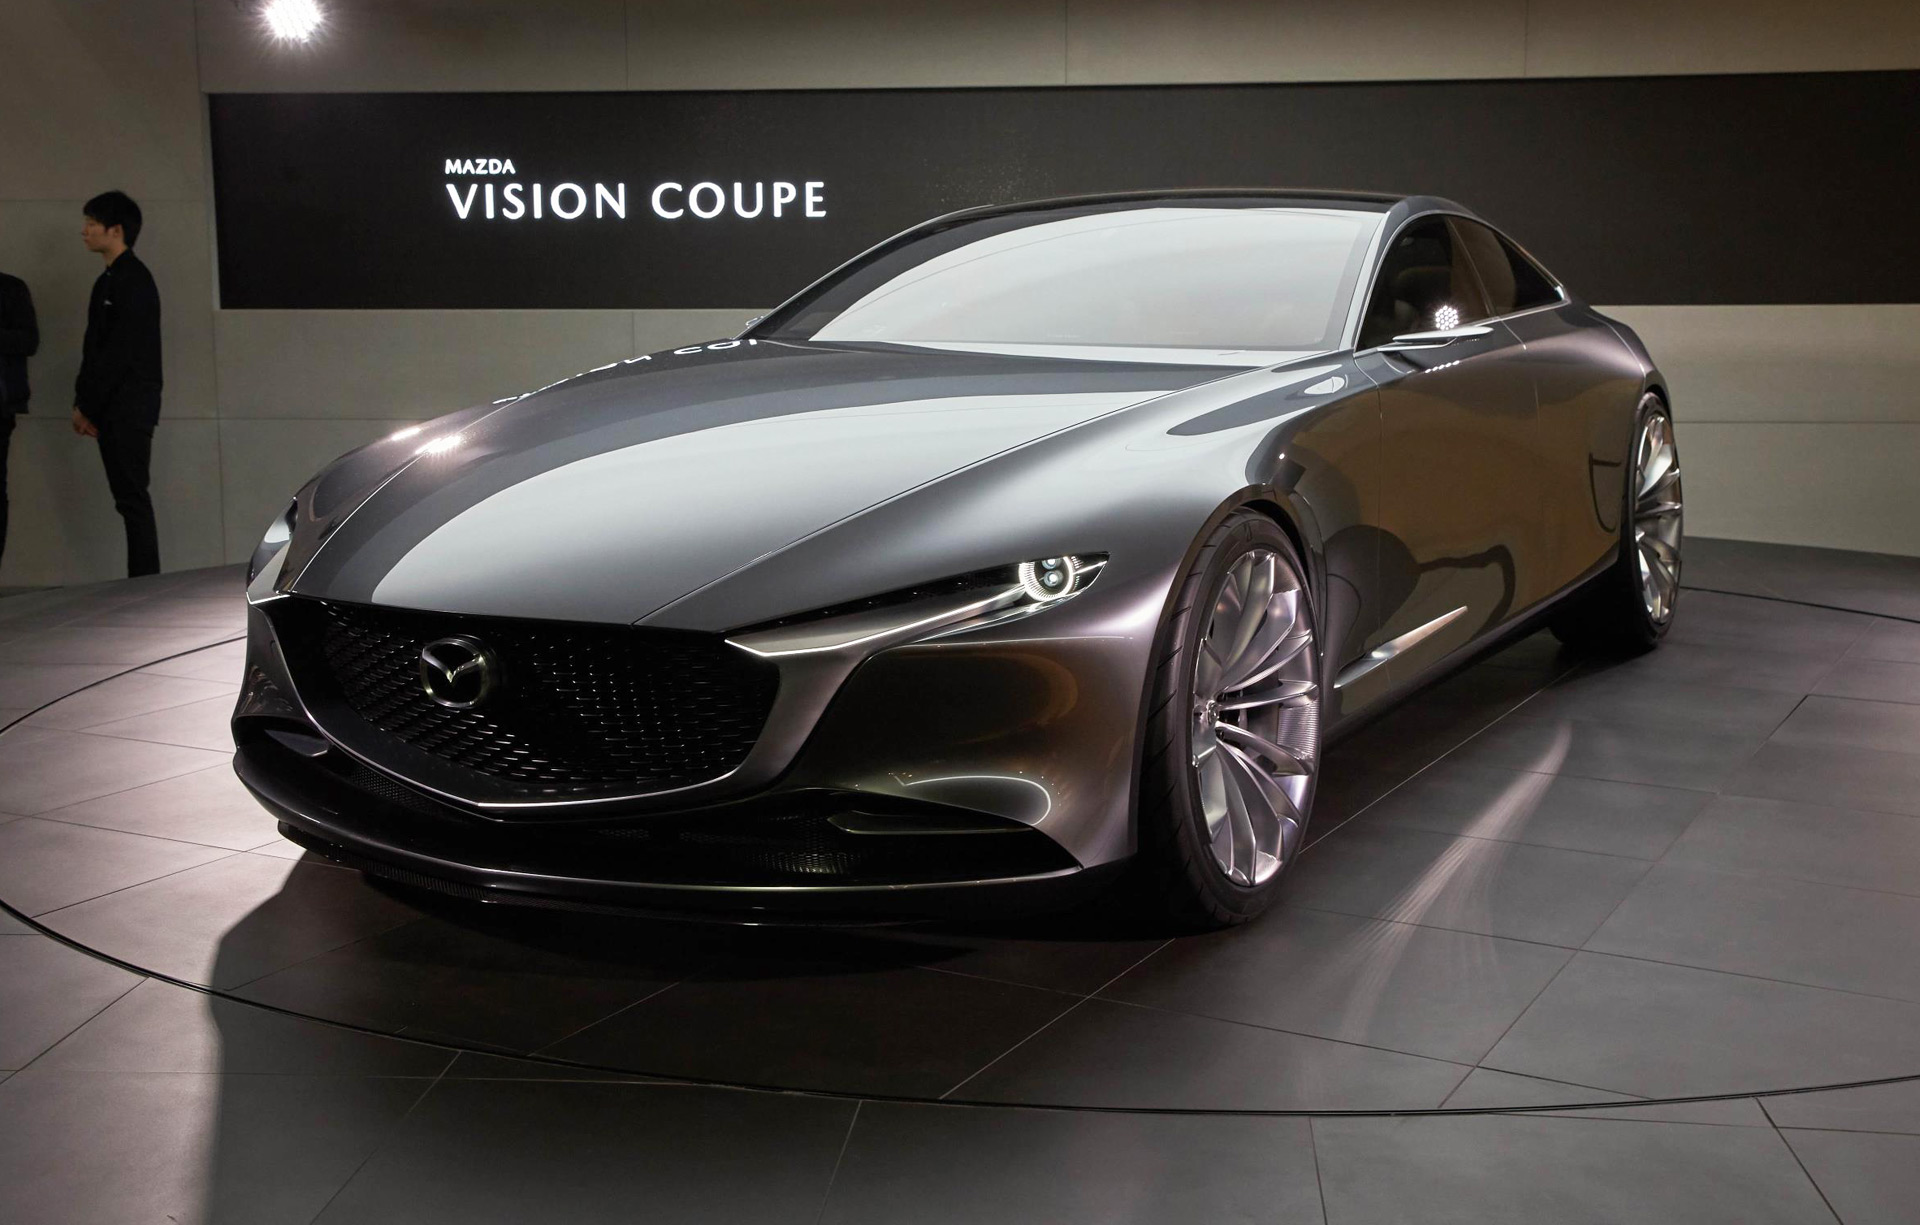 fe42568cb5 Mazda embraces minimalism with Vision Coupe concept